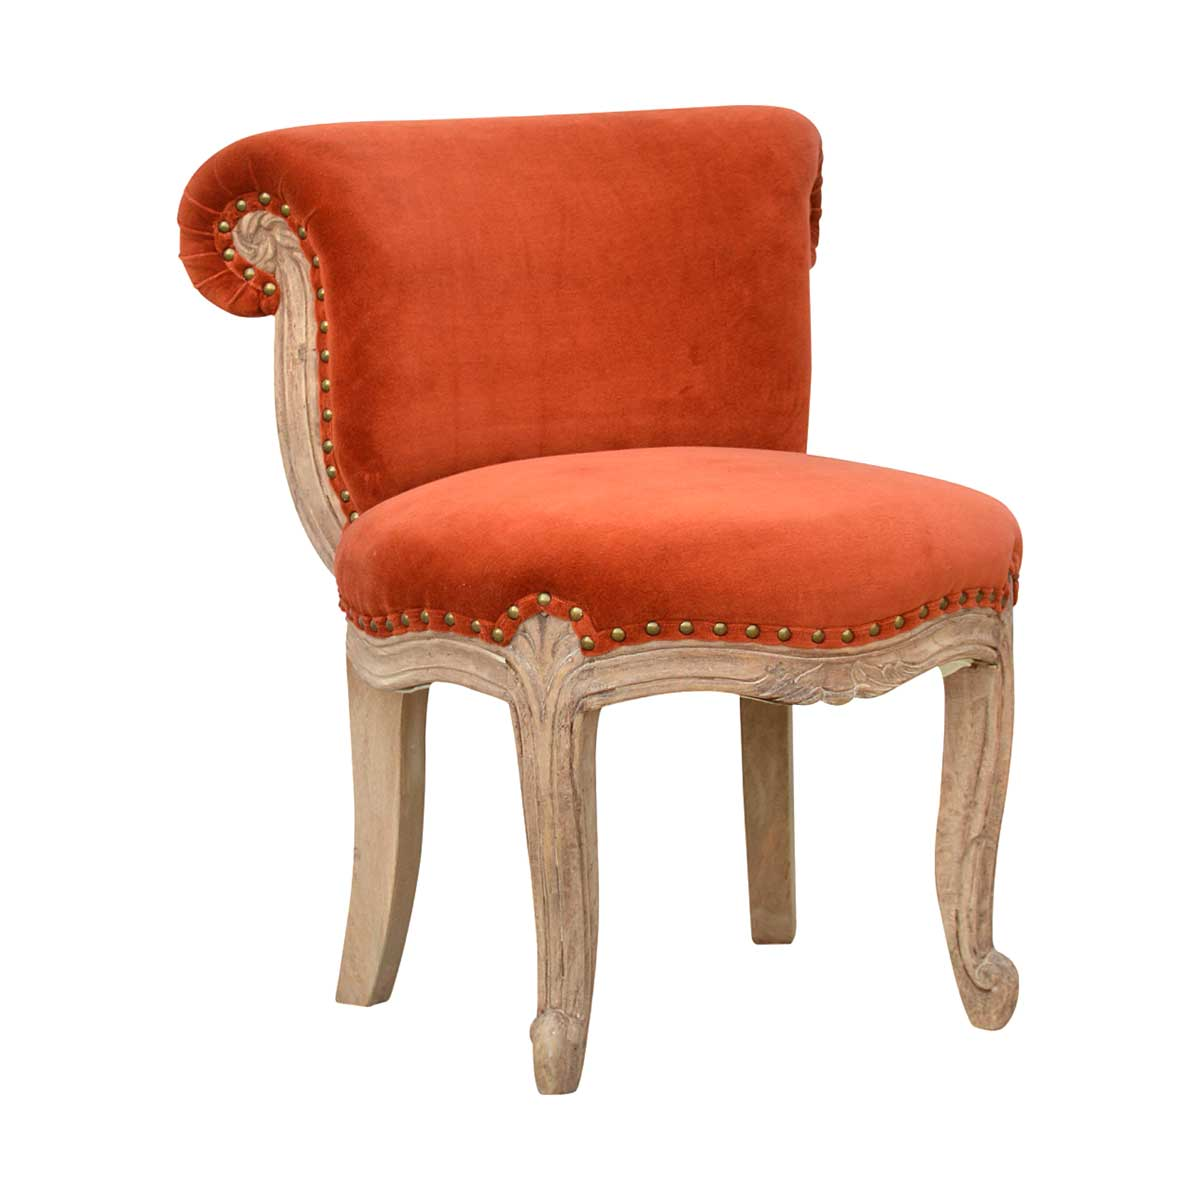 ARTISAN Small Studded Velvet Occasional Chair in Mango Wood - Eight Colours